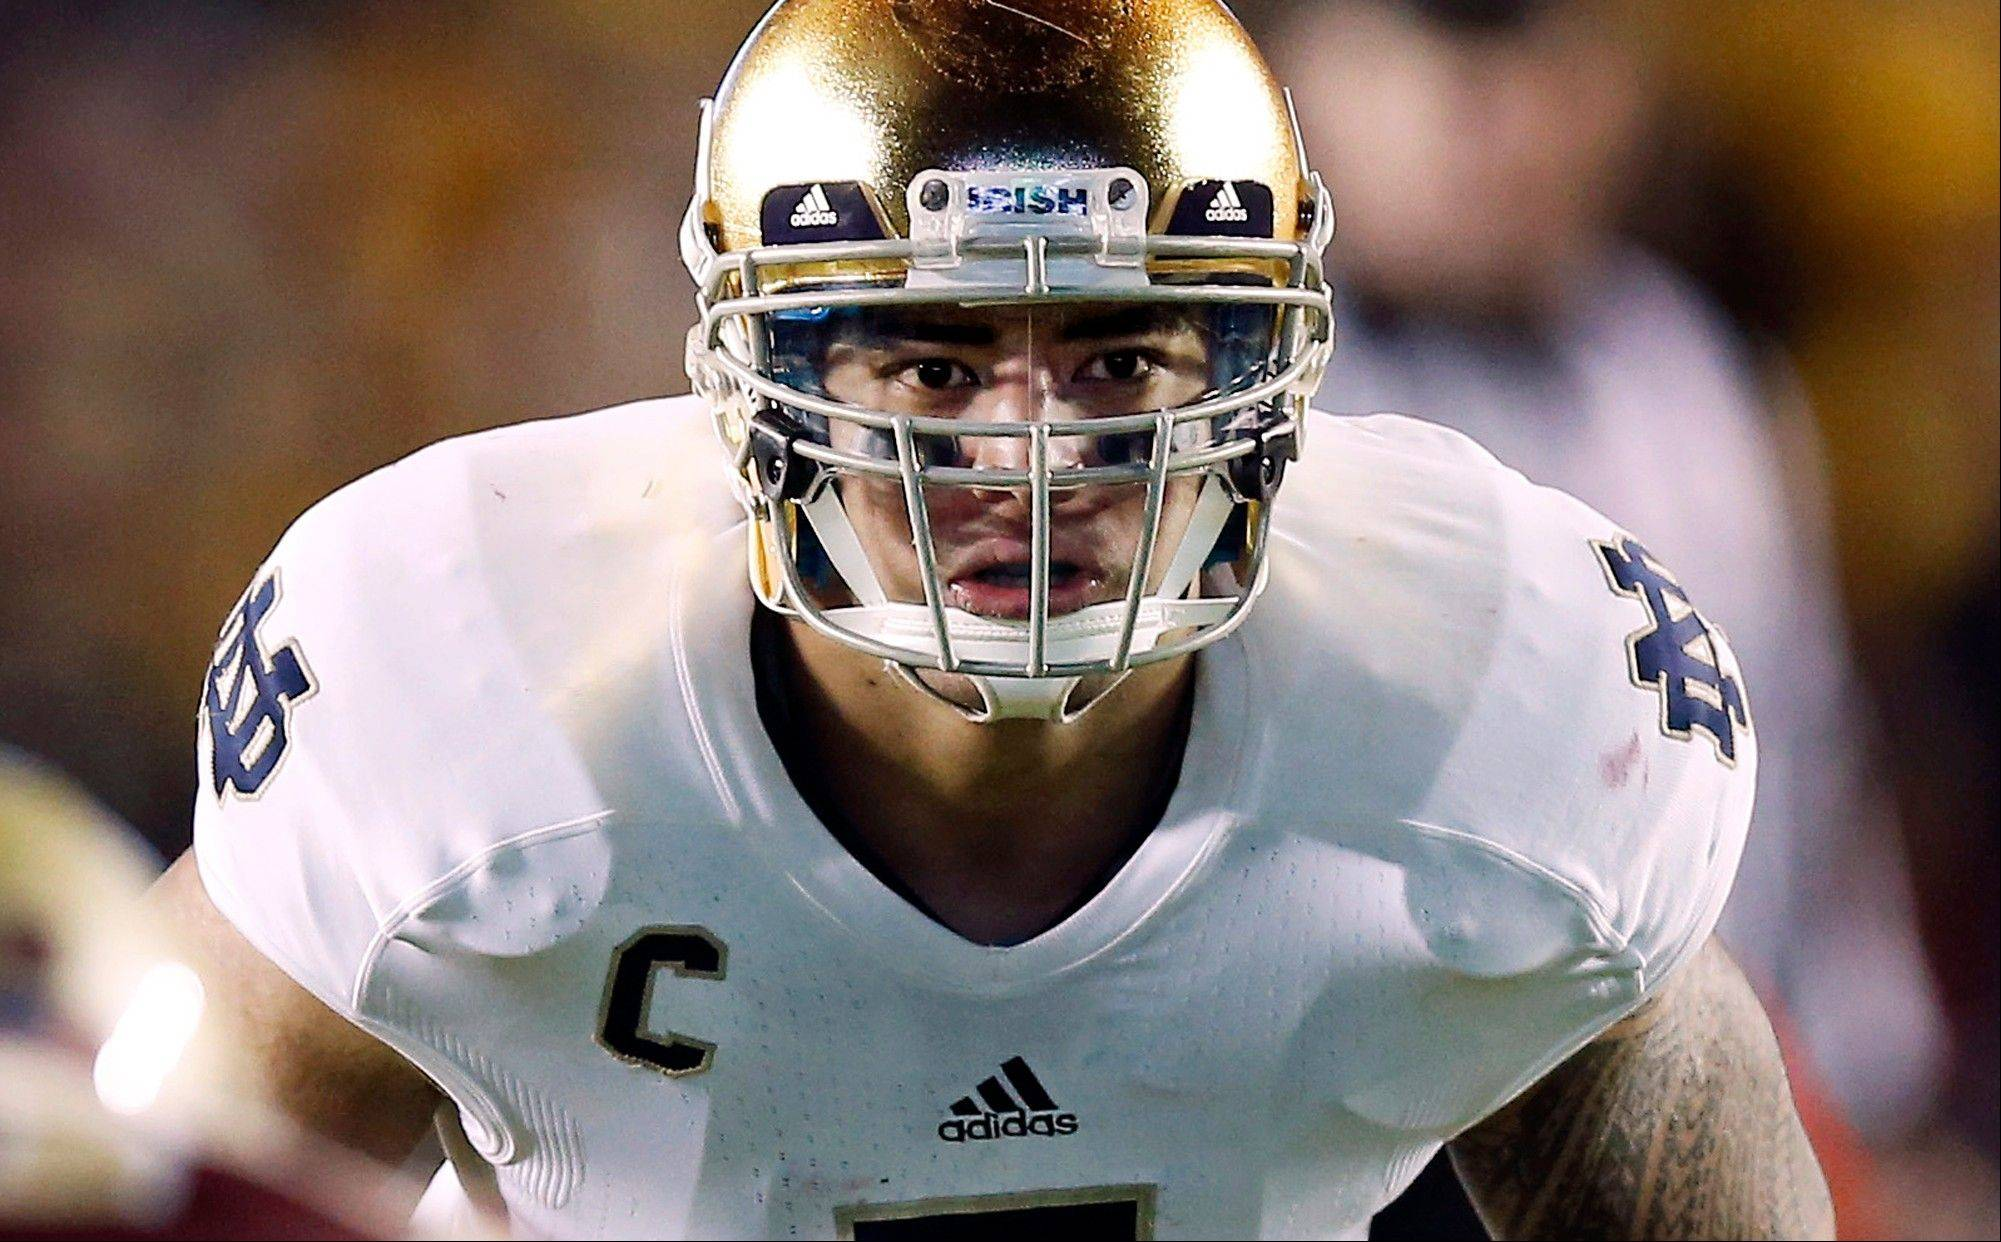 FILE - In this Nov. 10, 2012, file photo, Notre Dame linebacker Manti Te'o waits for the snap during the second half of Notre Dame's 21-6 win over Boston College in a NCAA college football game in Boston. Te'o is a finalist for the Heisman Trophy.